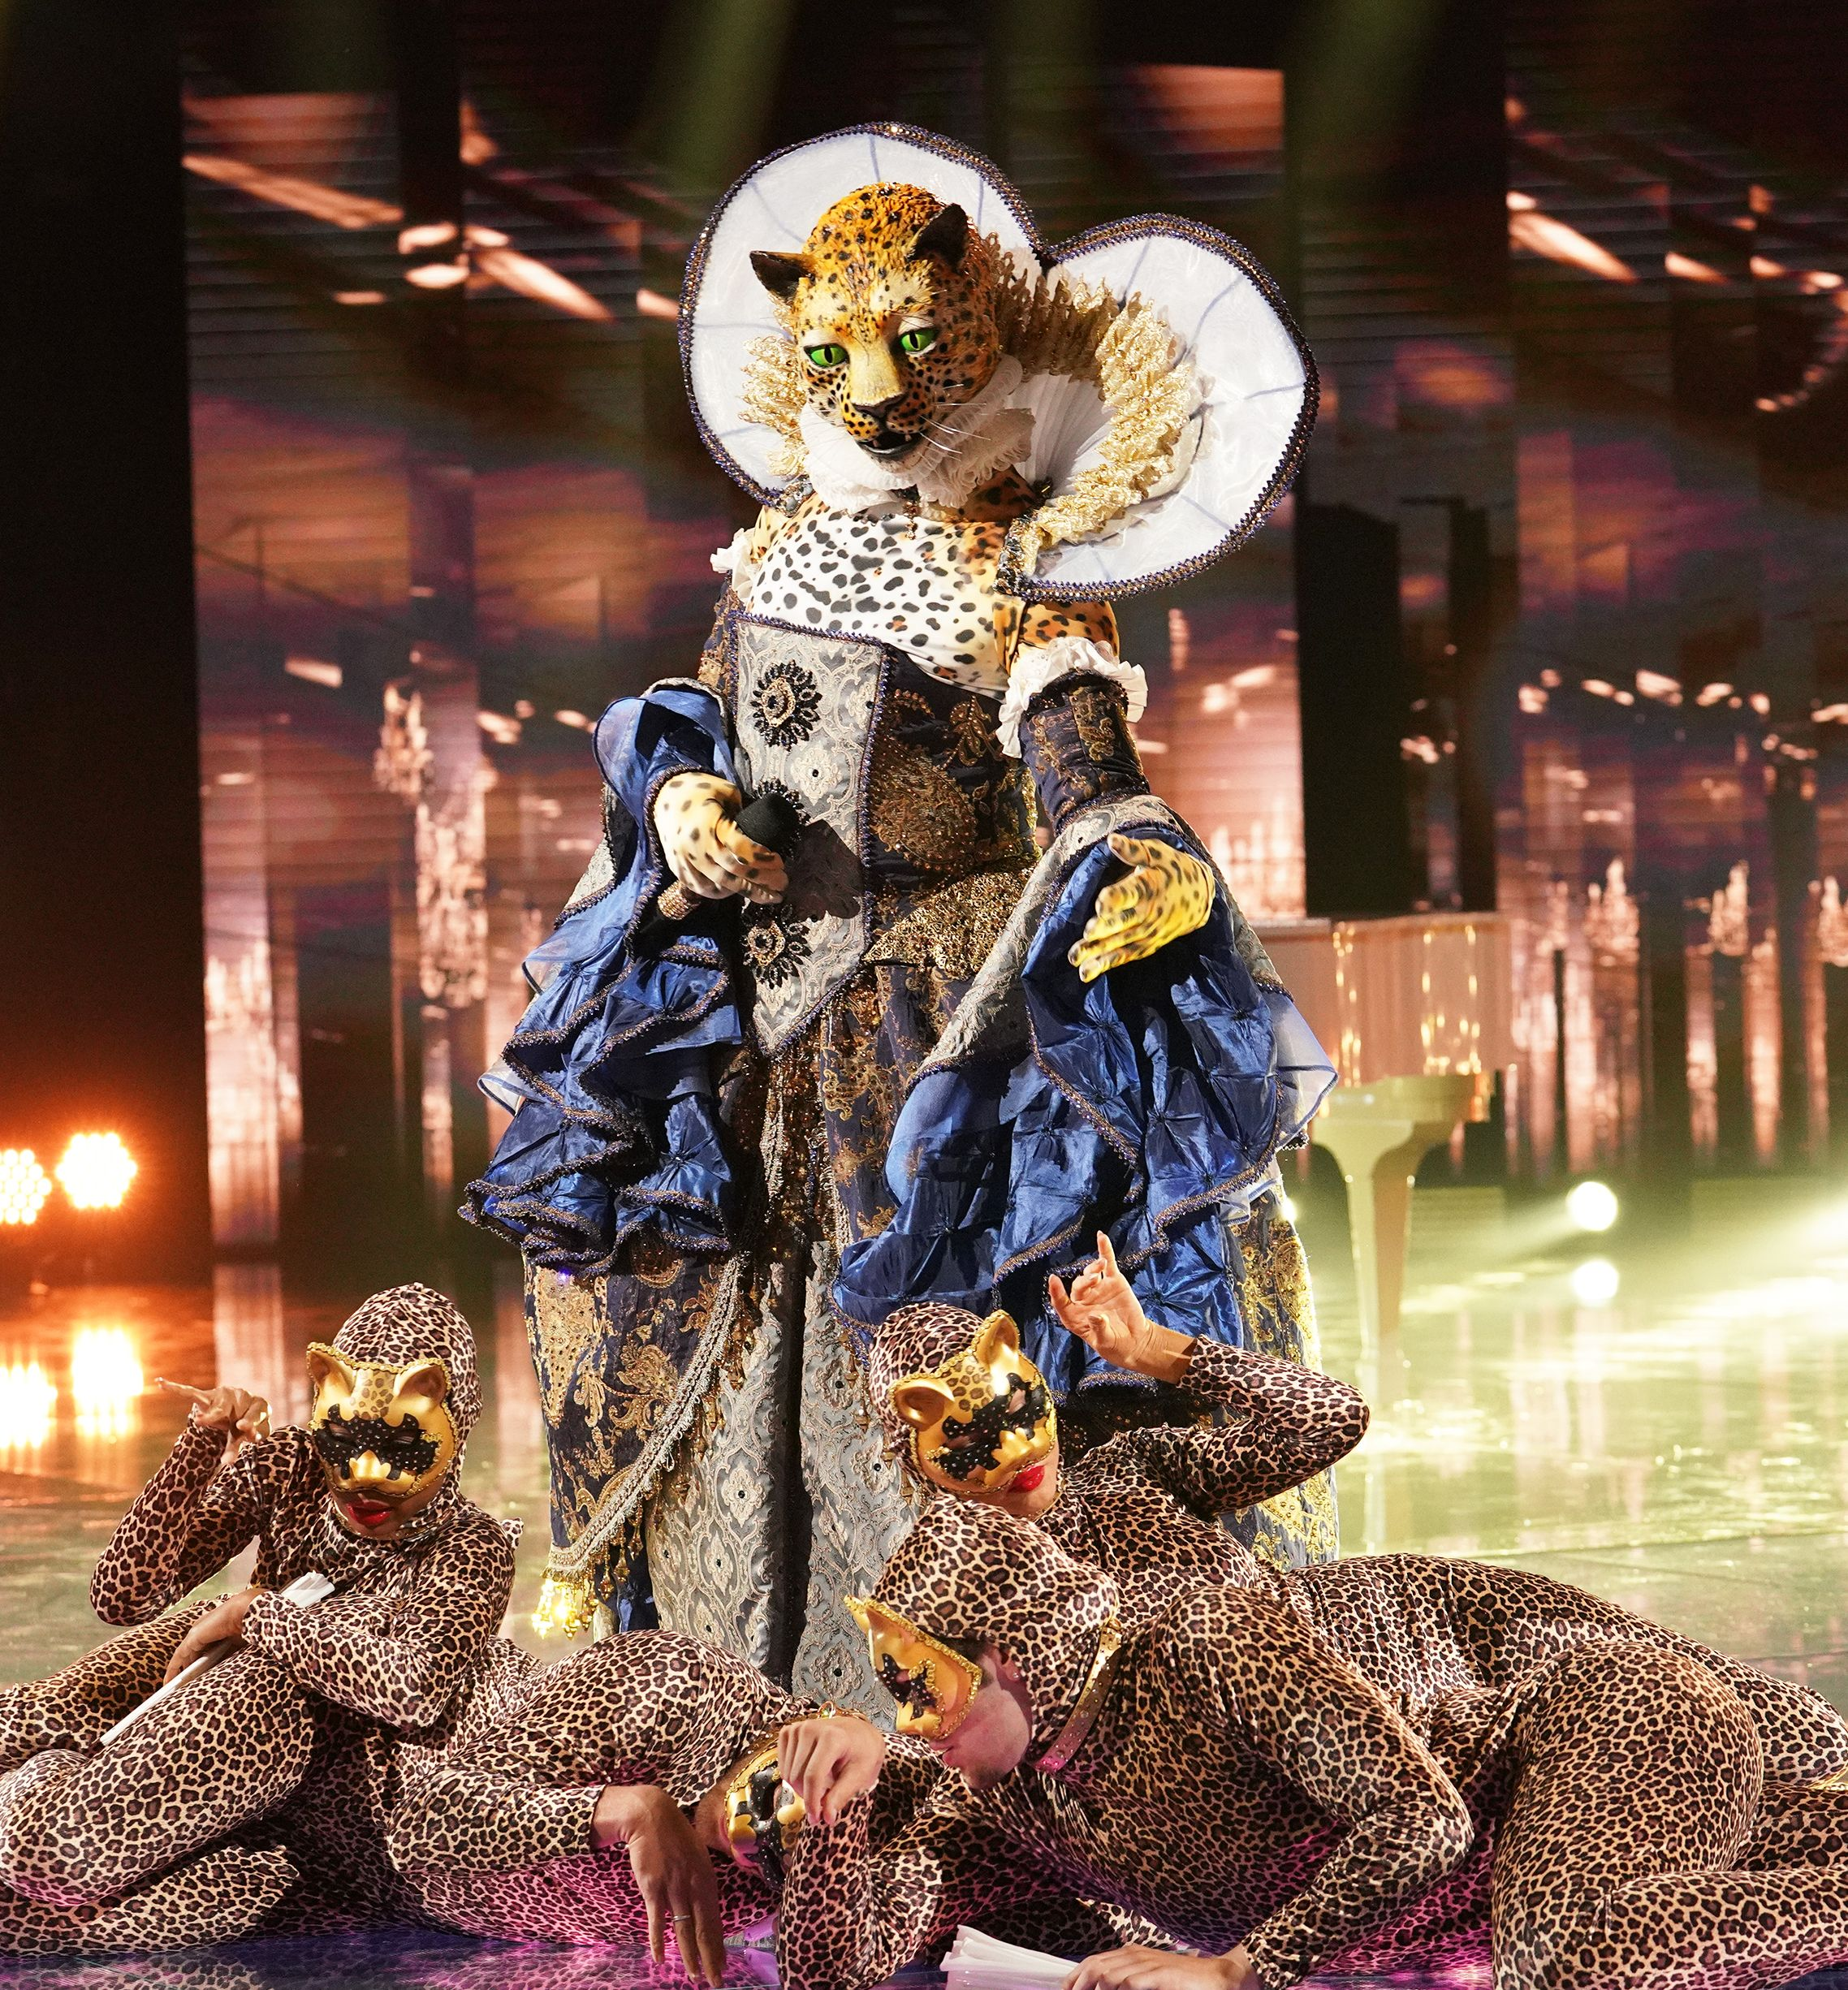 Who Is the Leopard on 'The Masked Singer'? These Fan Theories Are VERY Convincing